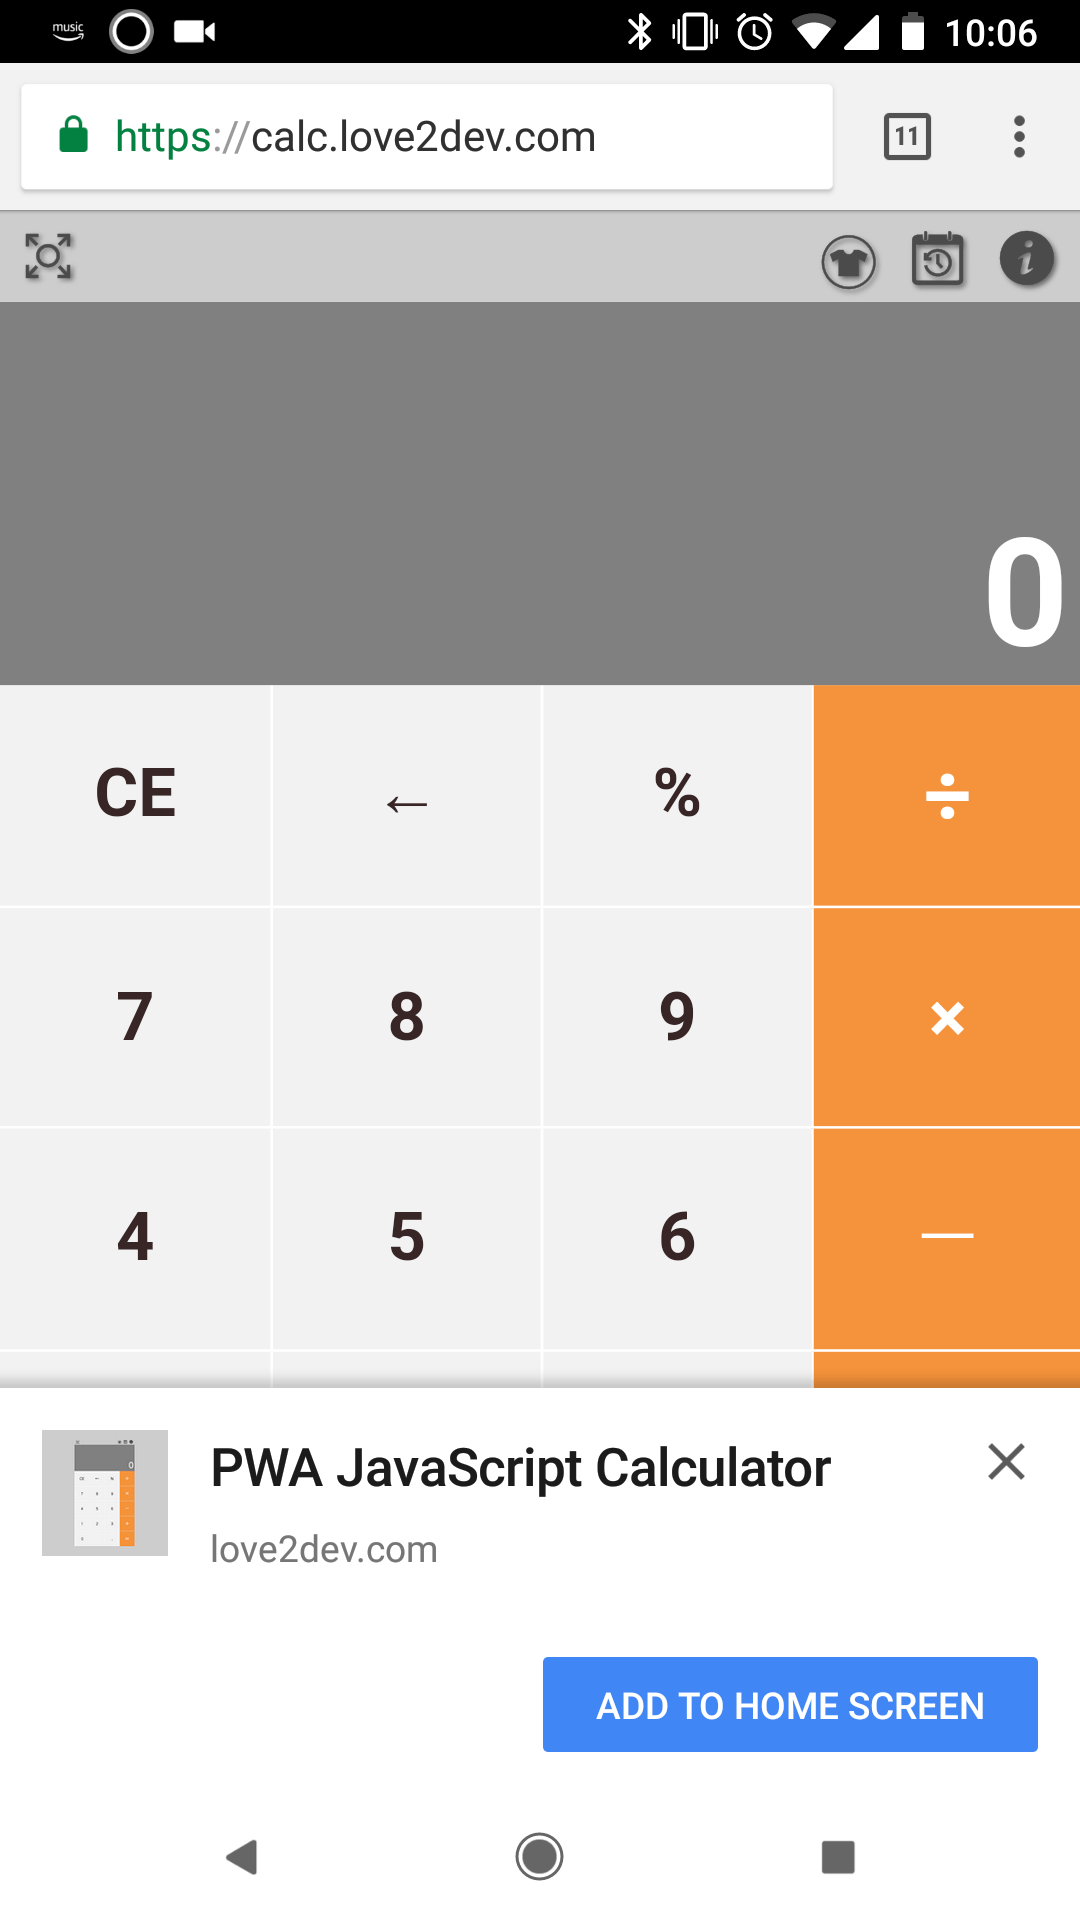 Introducing The Javascript Calculator Progressive Web App (PWA)